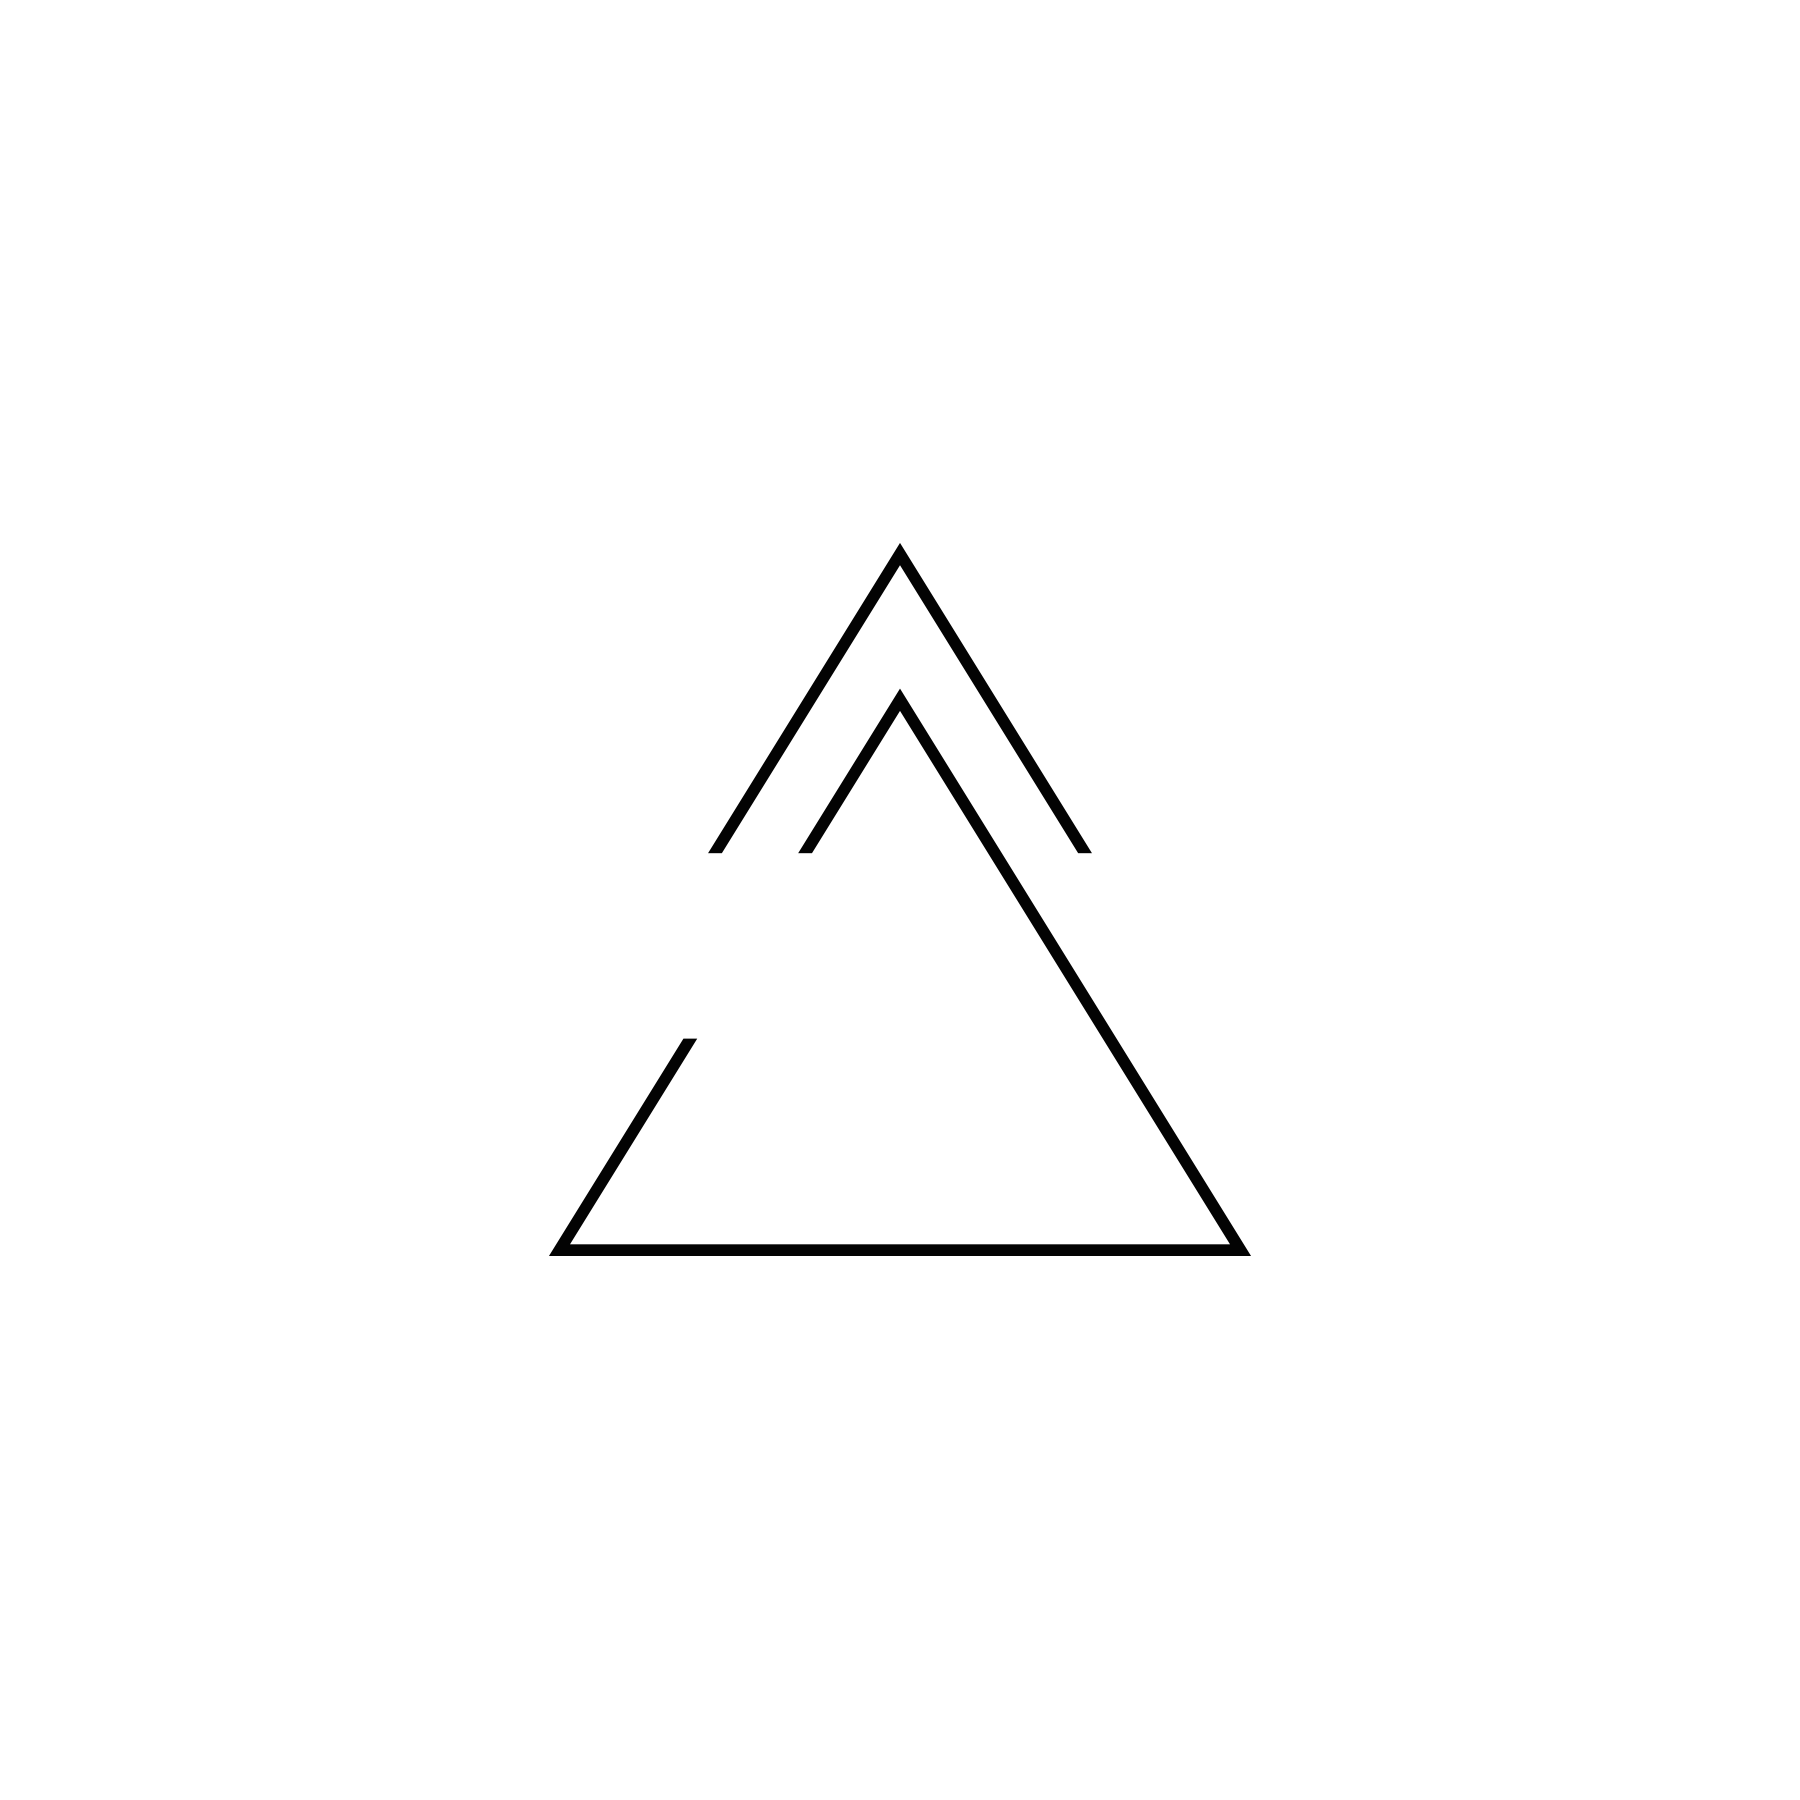 Upper Arrow (Hat) - Upper arrow (hat) means progress, moving forward; open delta means openness to change.